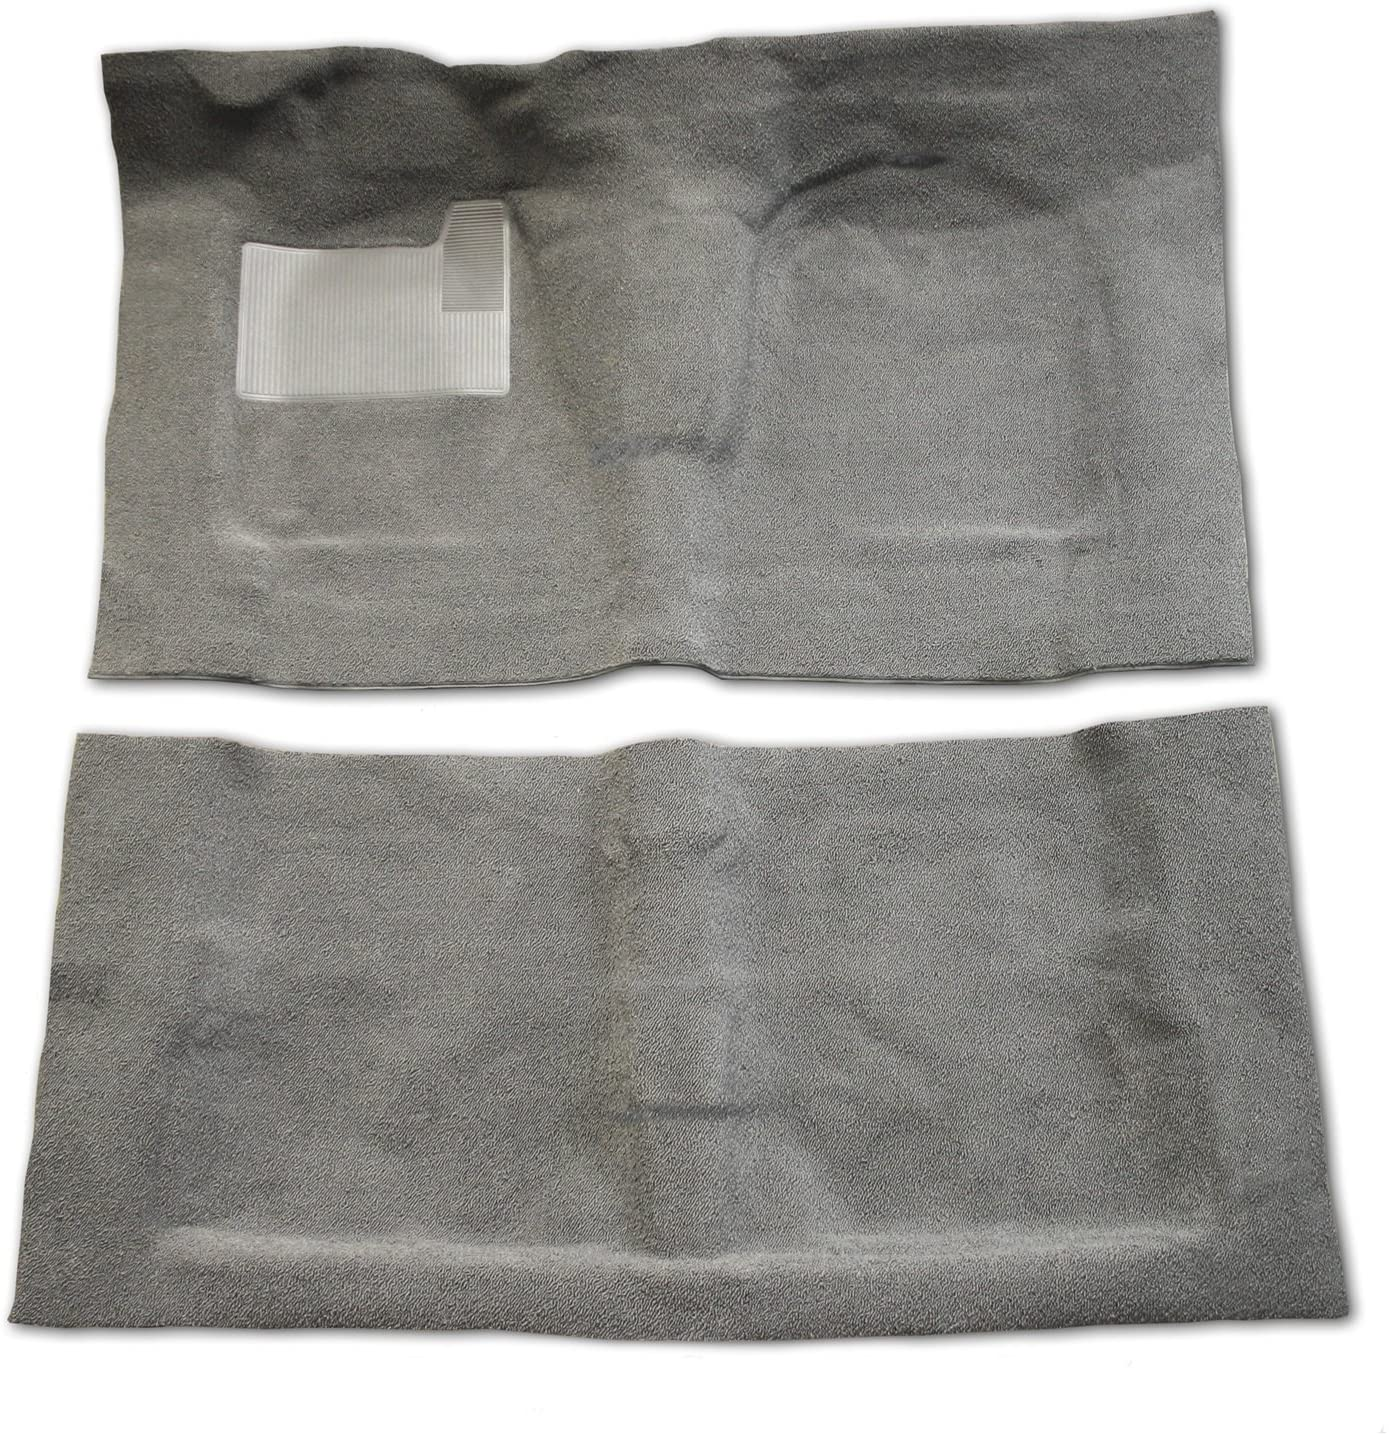 Lund Nifty 167479779 Replacement Carpet